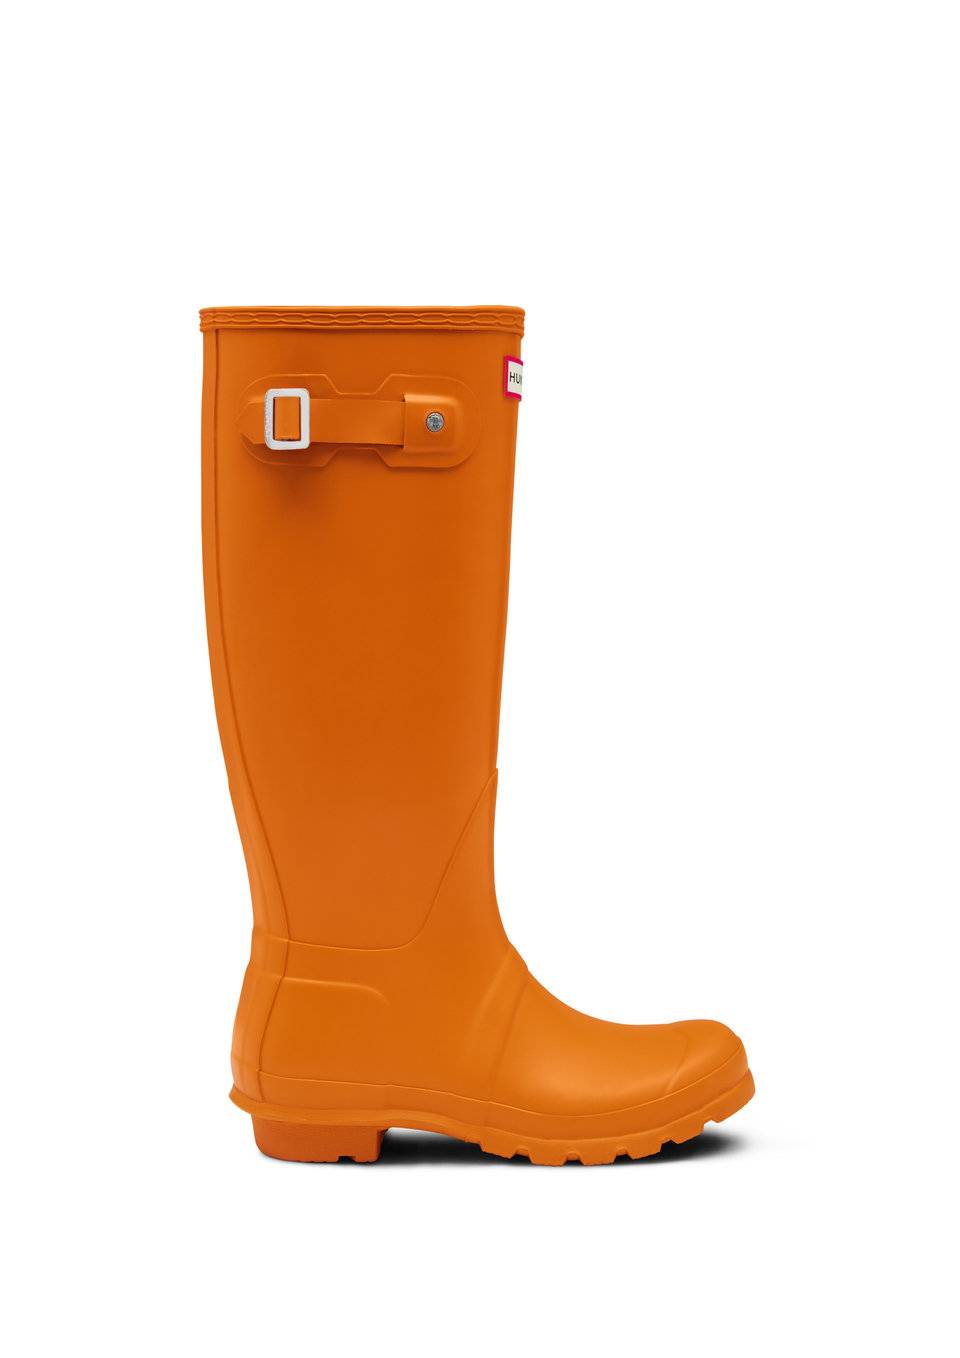 48_TALL BOOT BY HUNTER ORIGINAL - WFT2000RMA-MRI 529 pln.jpg